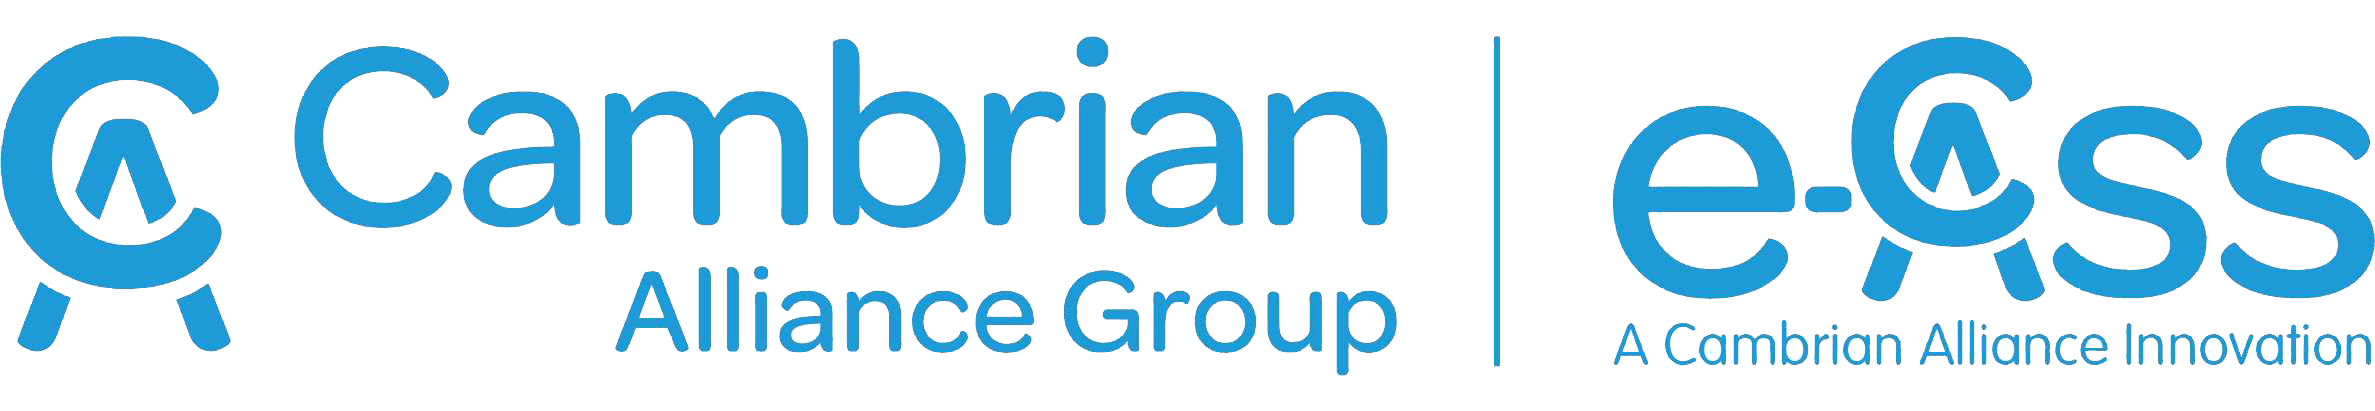 Cambrian Alliance Group